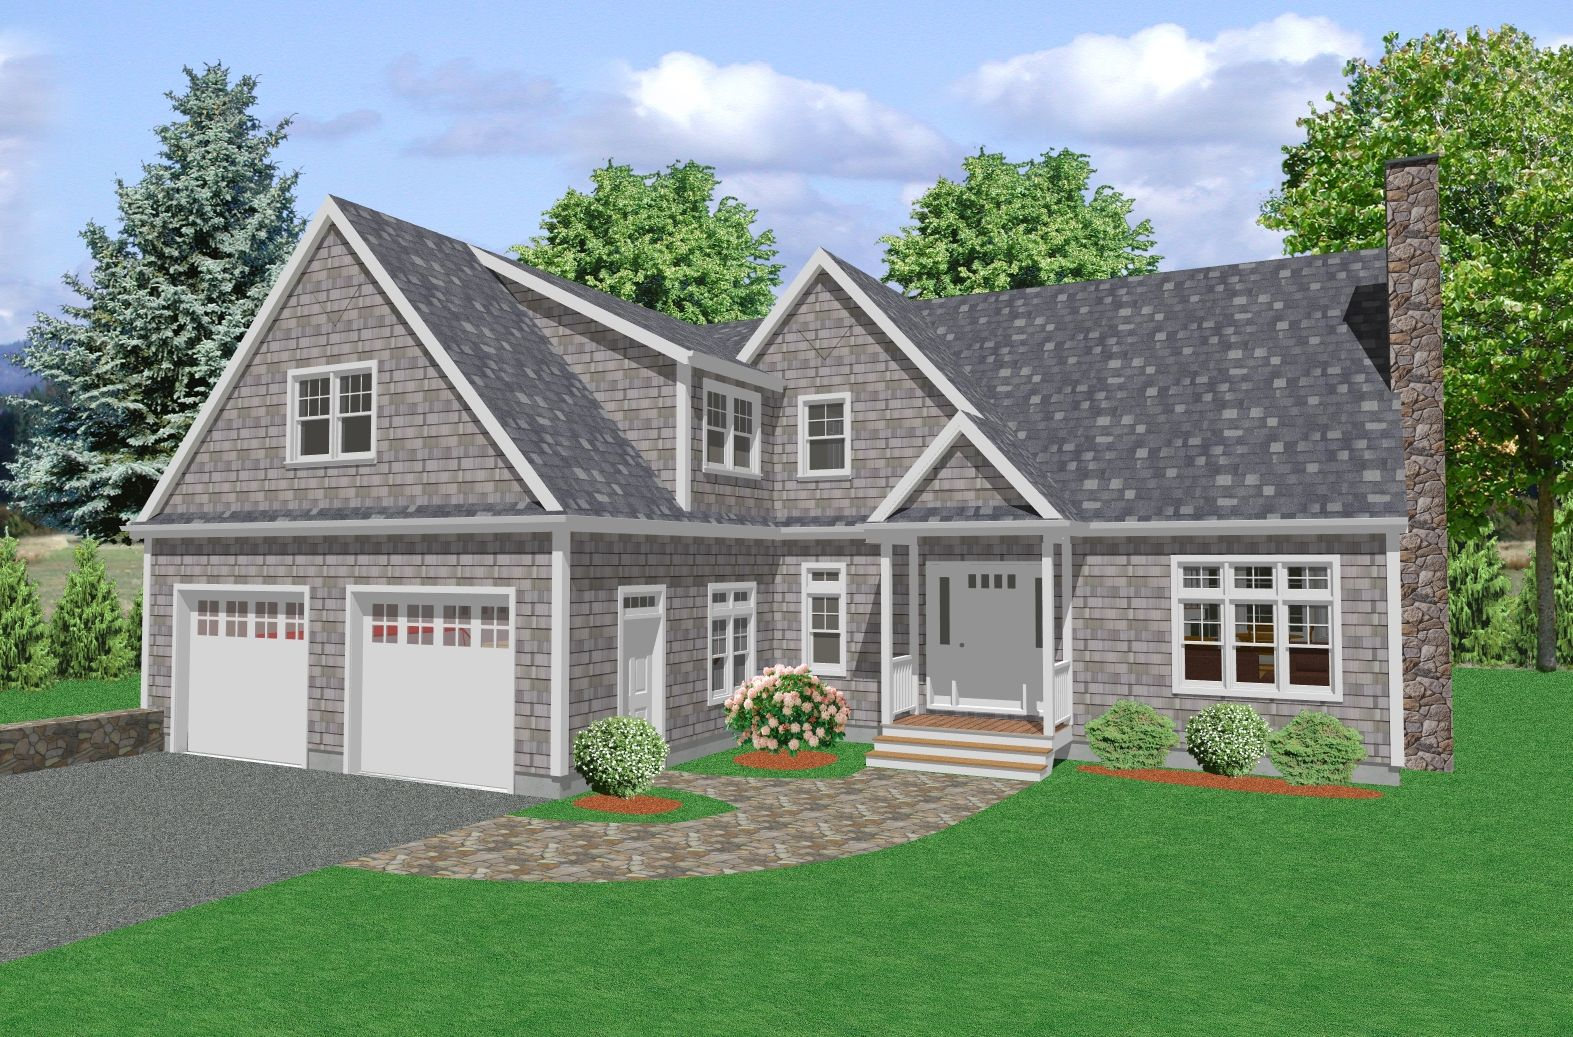 Cape cod style homes house plan two story traditional for Simple cape cod house plans